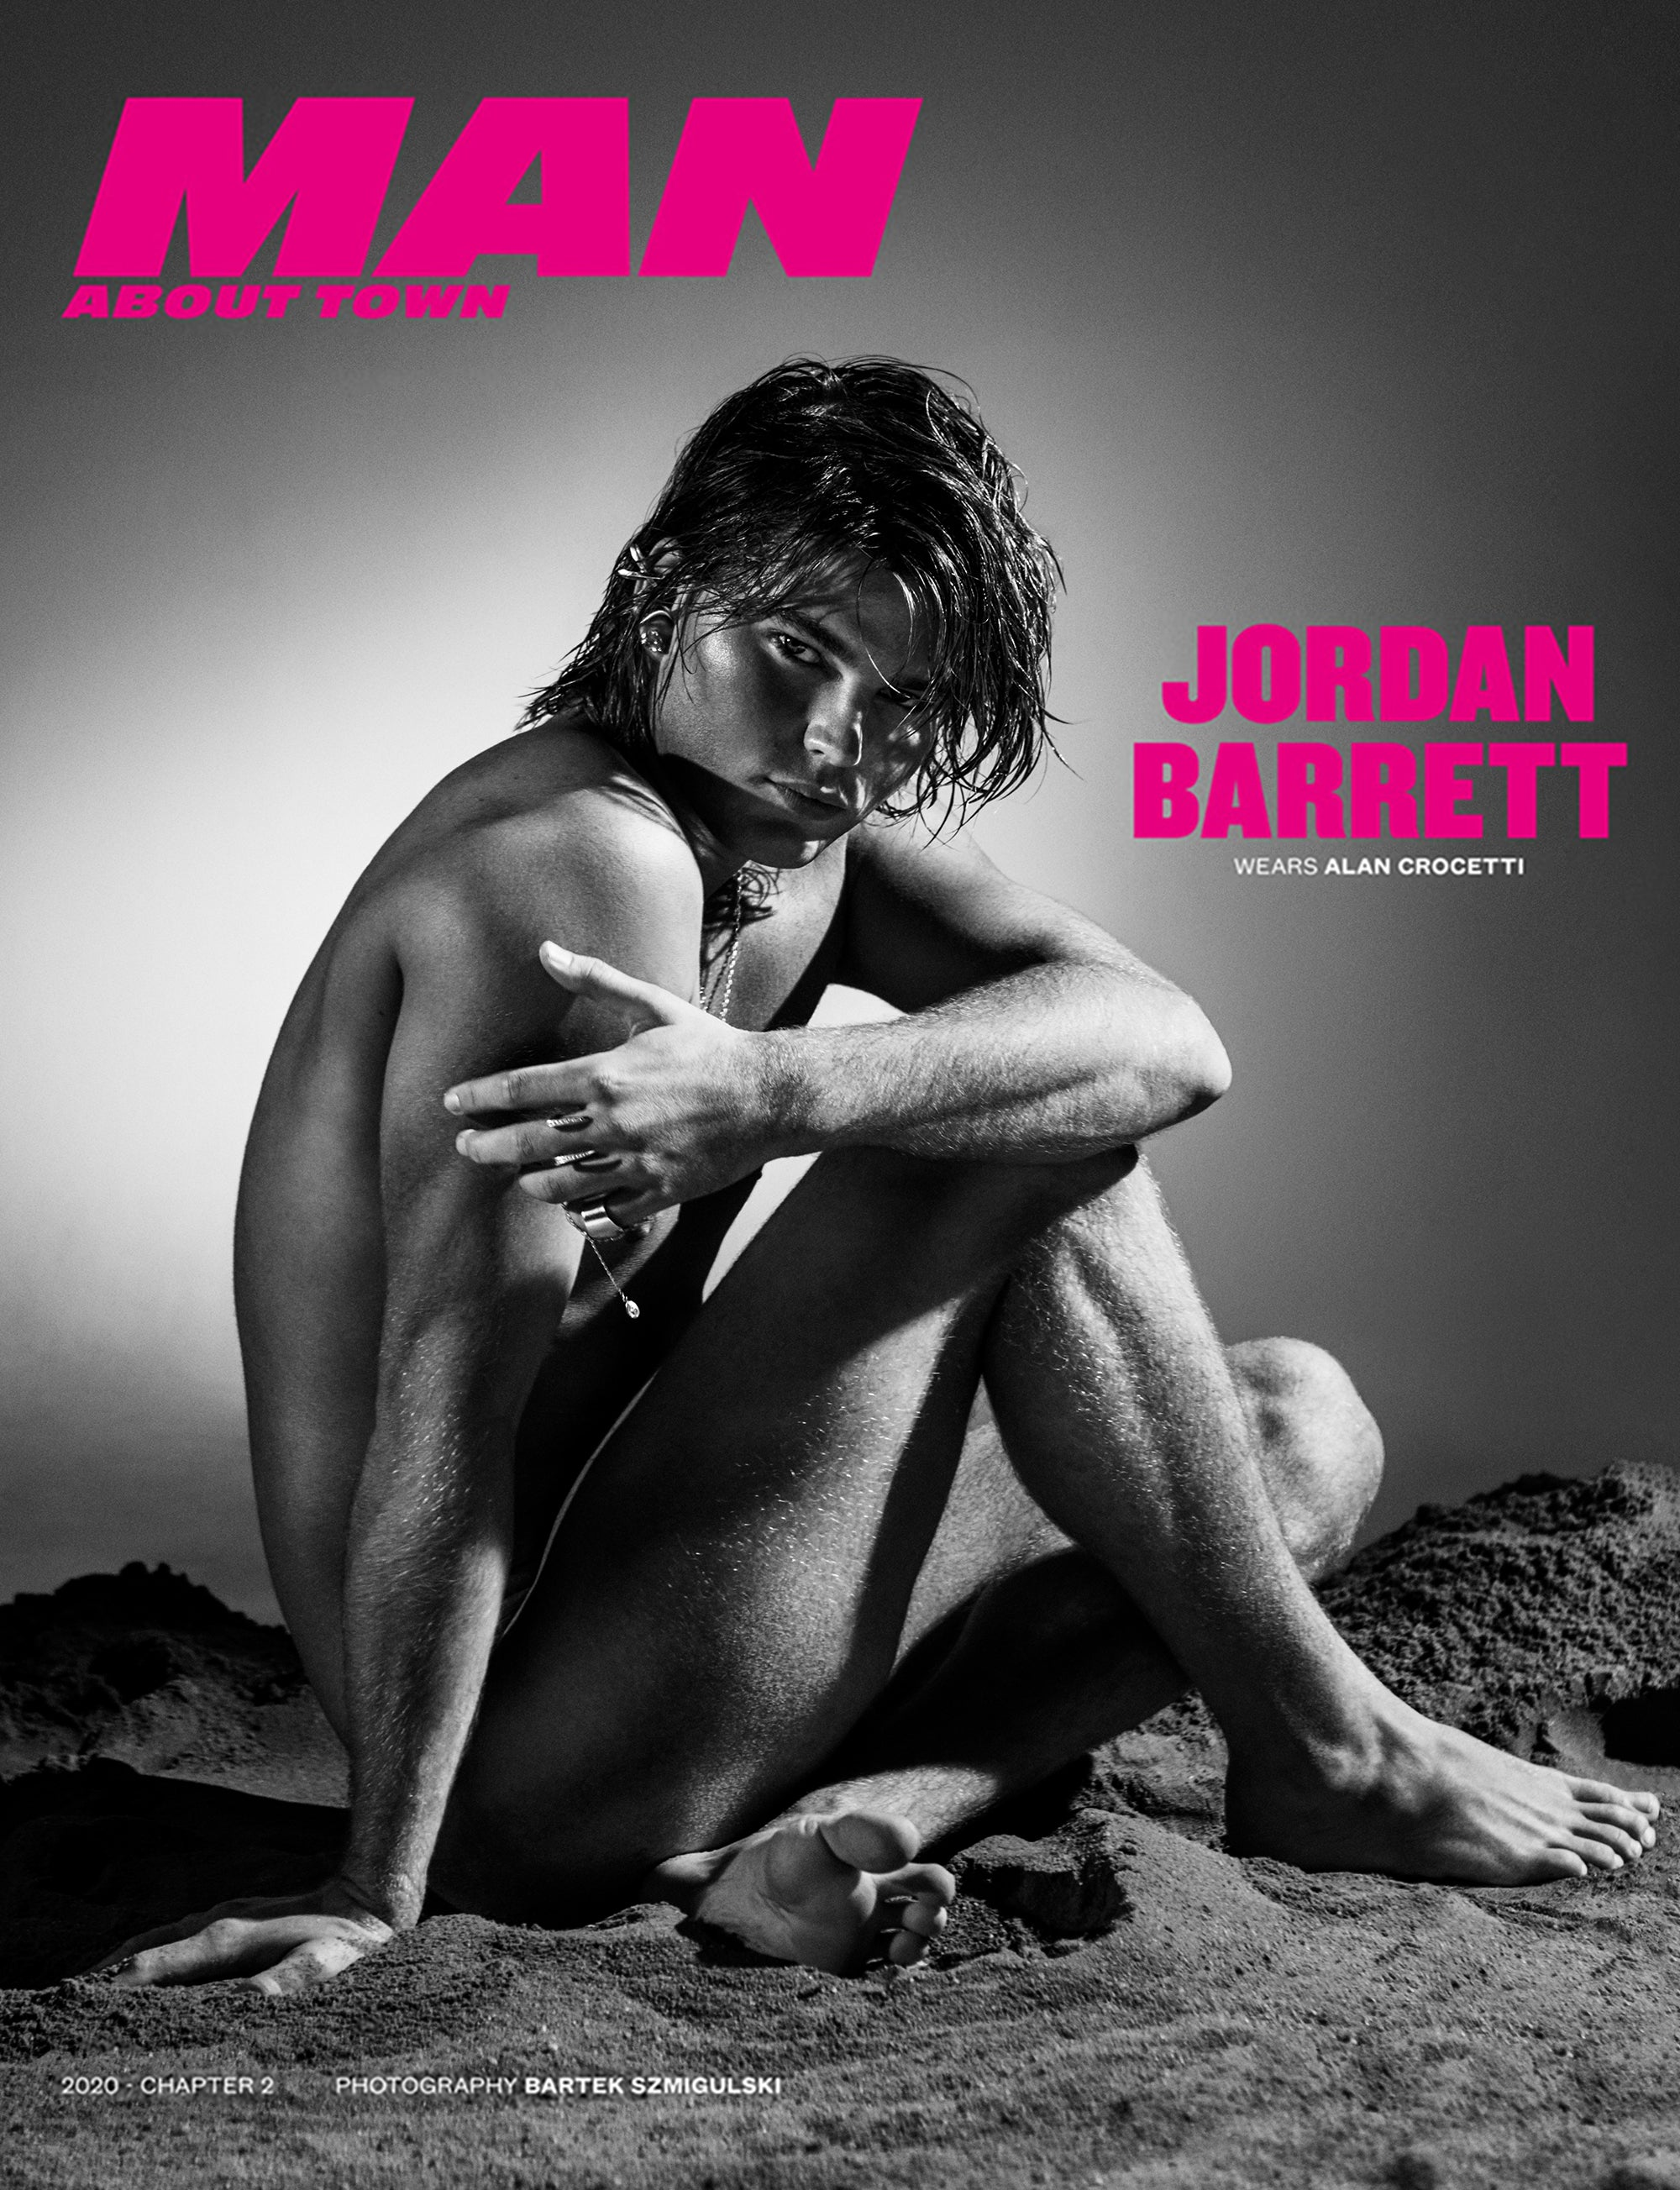 JORDAN BARRETT covers Man About Town 2020, Chapter II